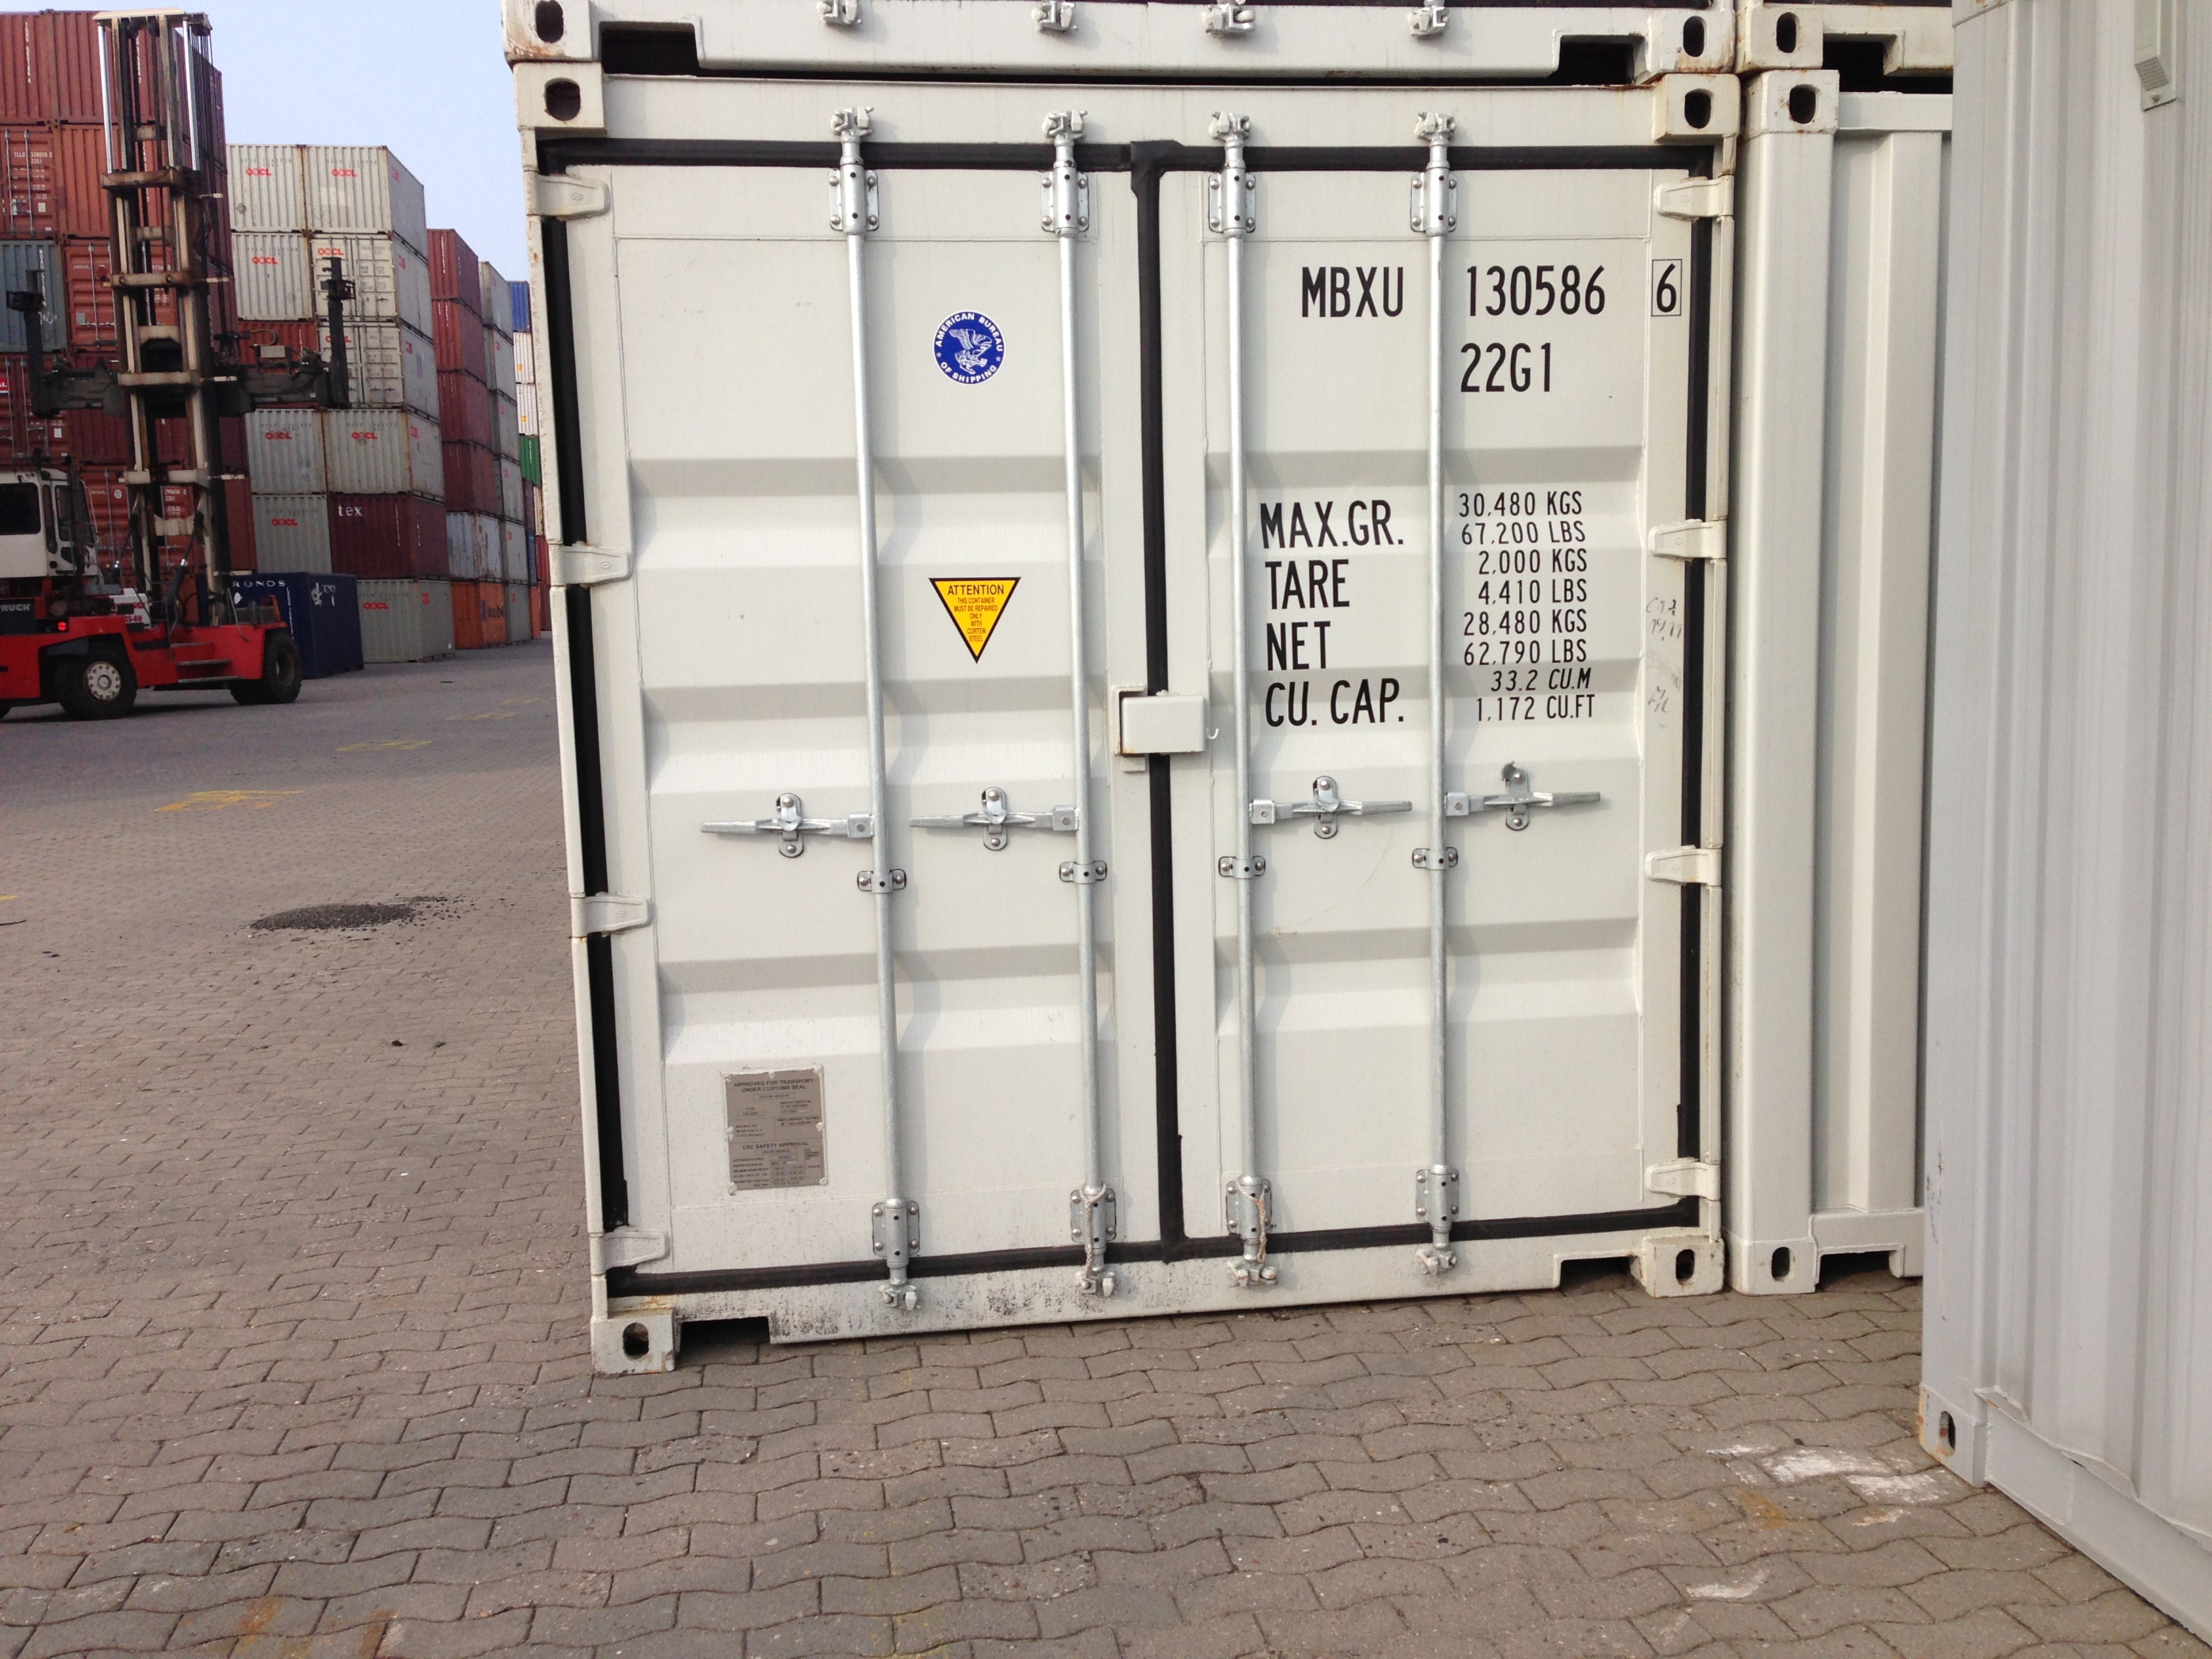 mobilbox gmbh container waren transport hamburg deutschland tel 040311869. Black Bedroom Furniture Sets. Home Design Ideas